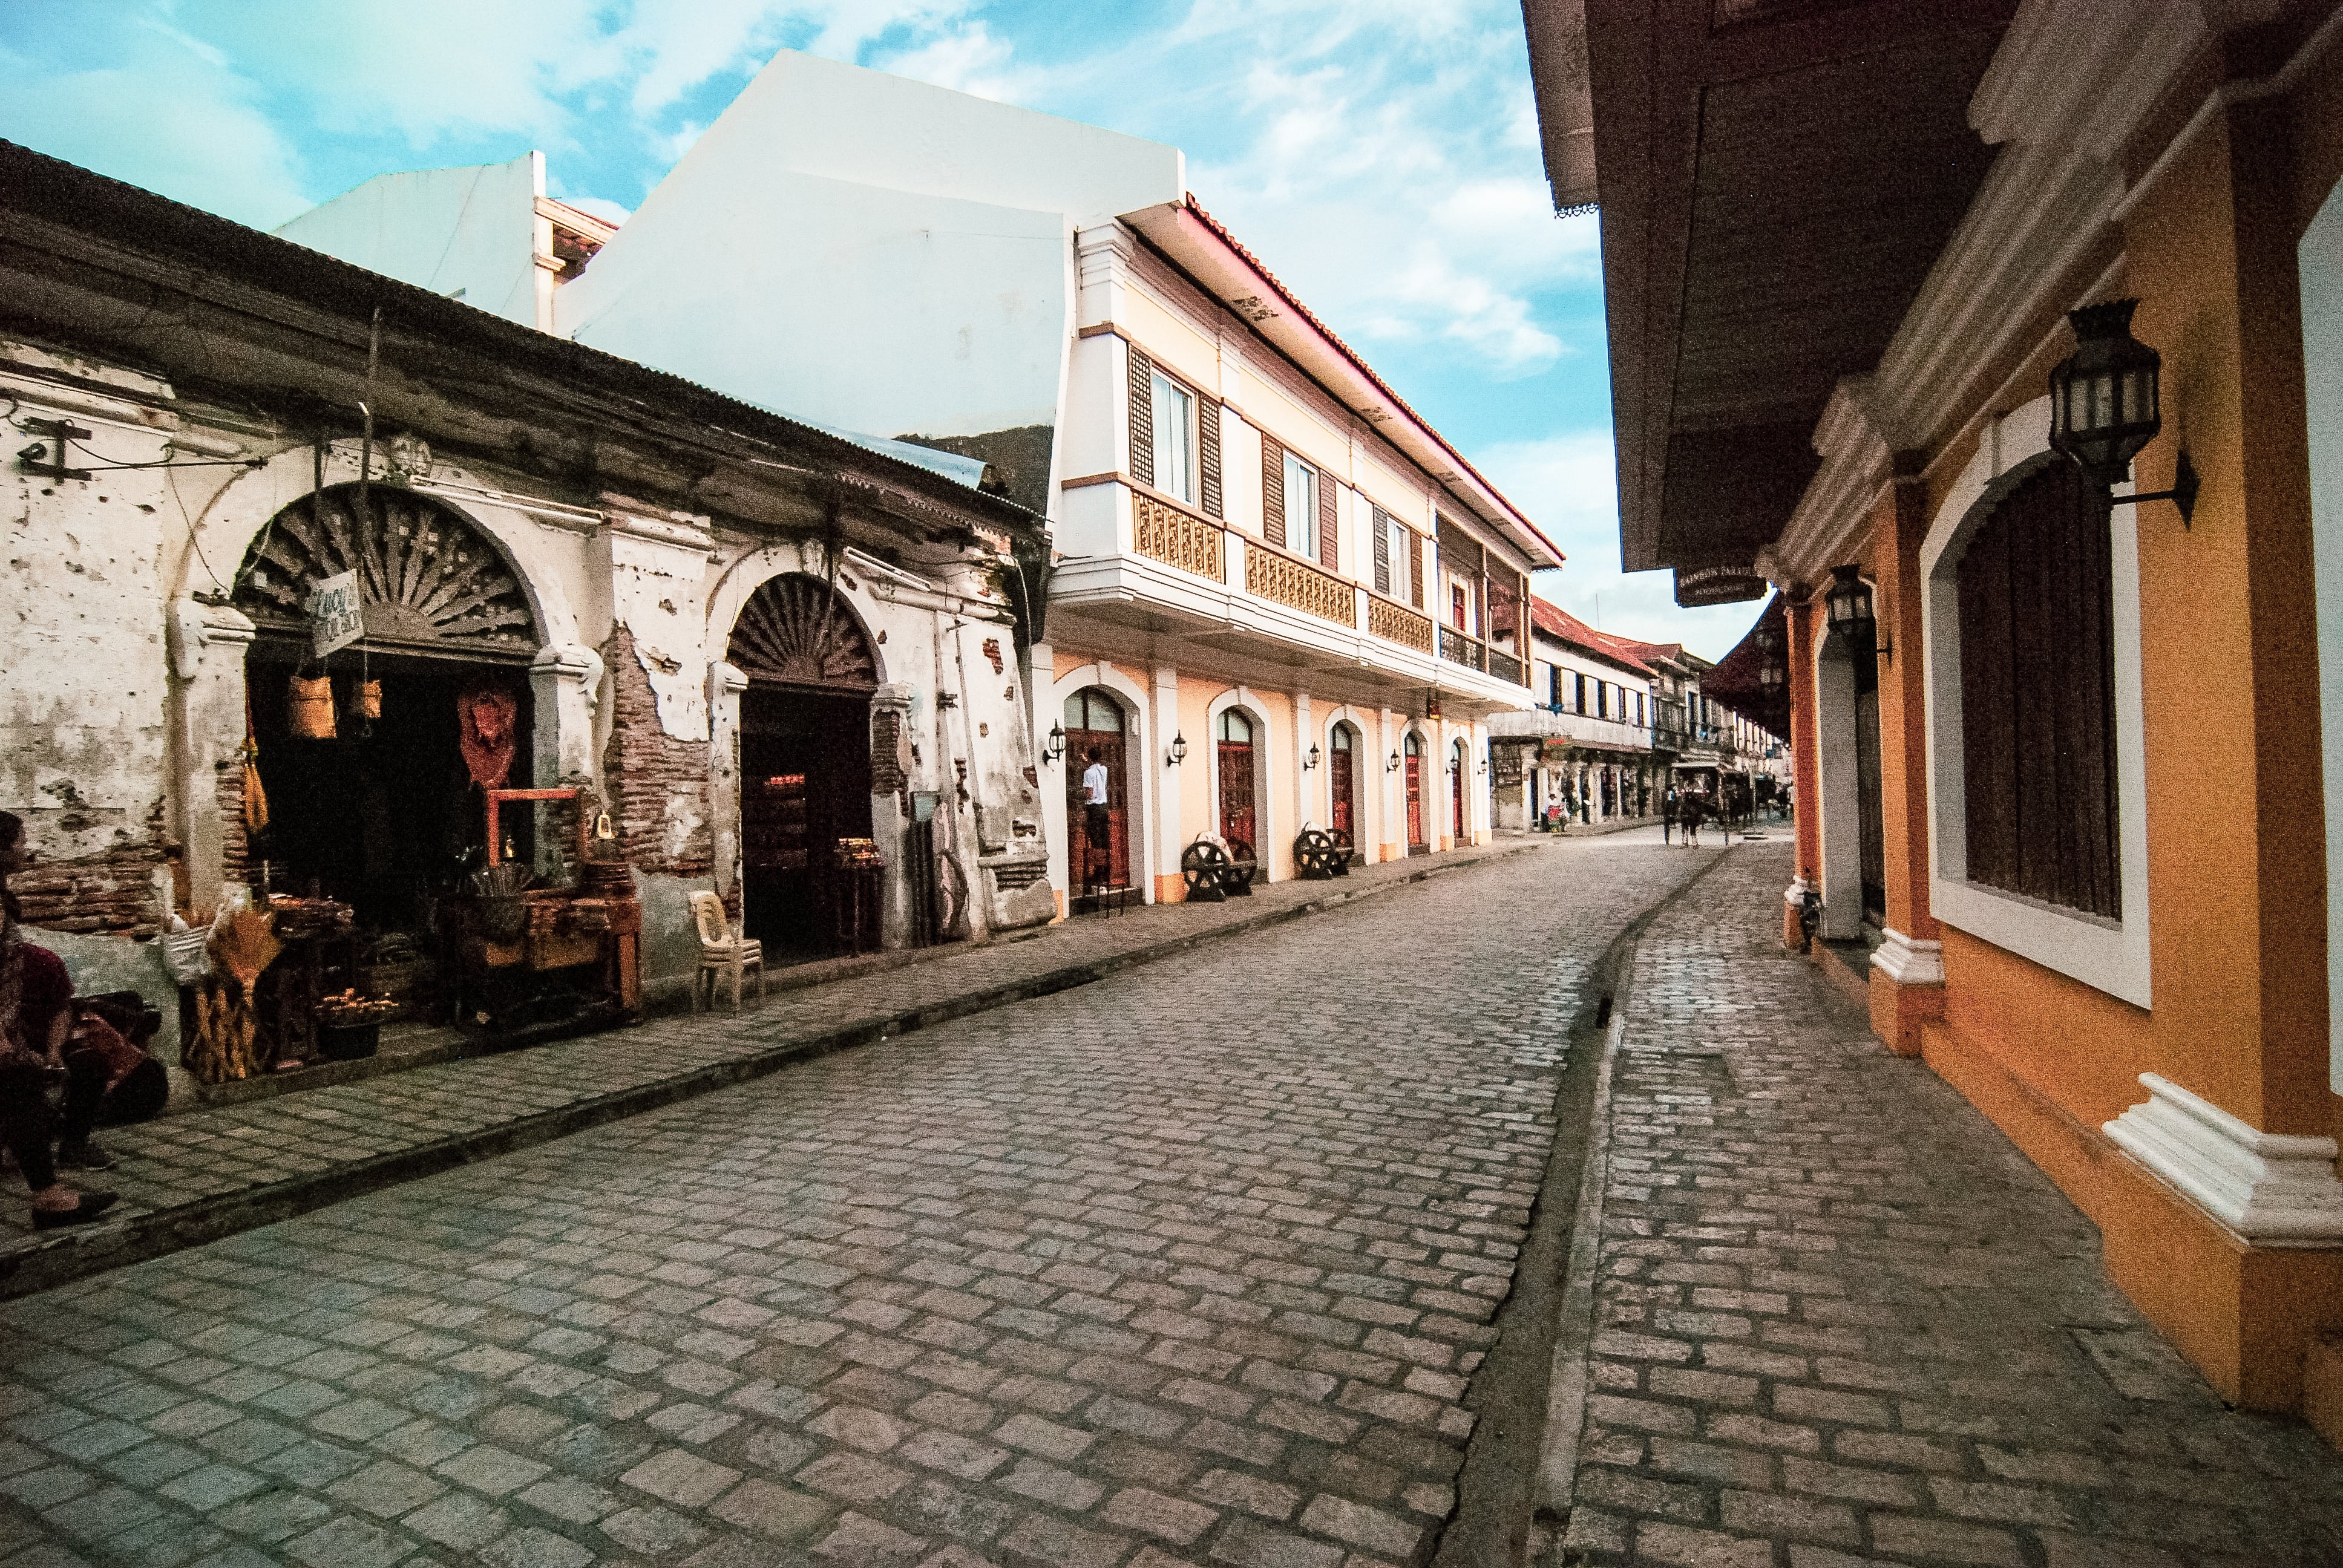 Spanish style structures in Calle Crisologo in Vigan